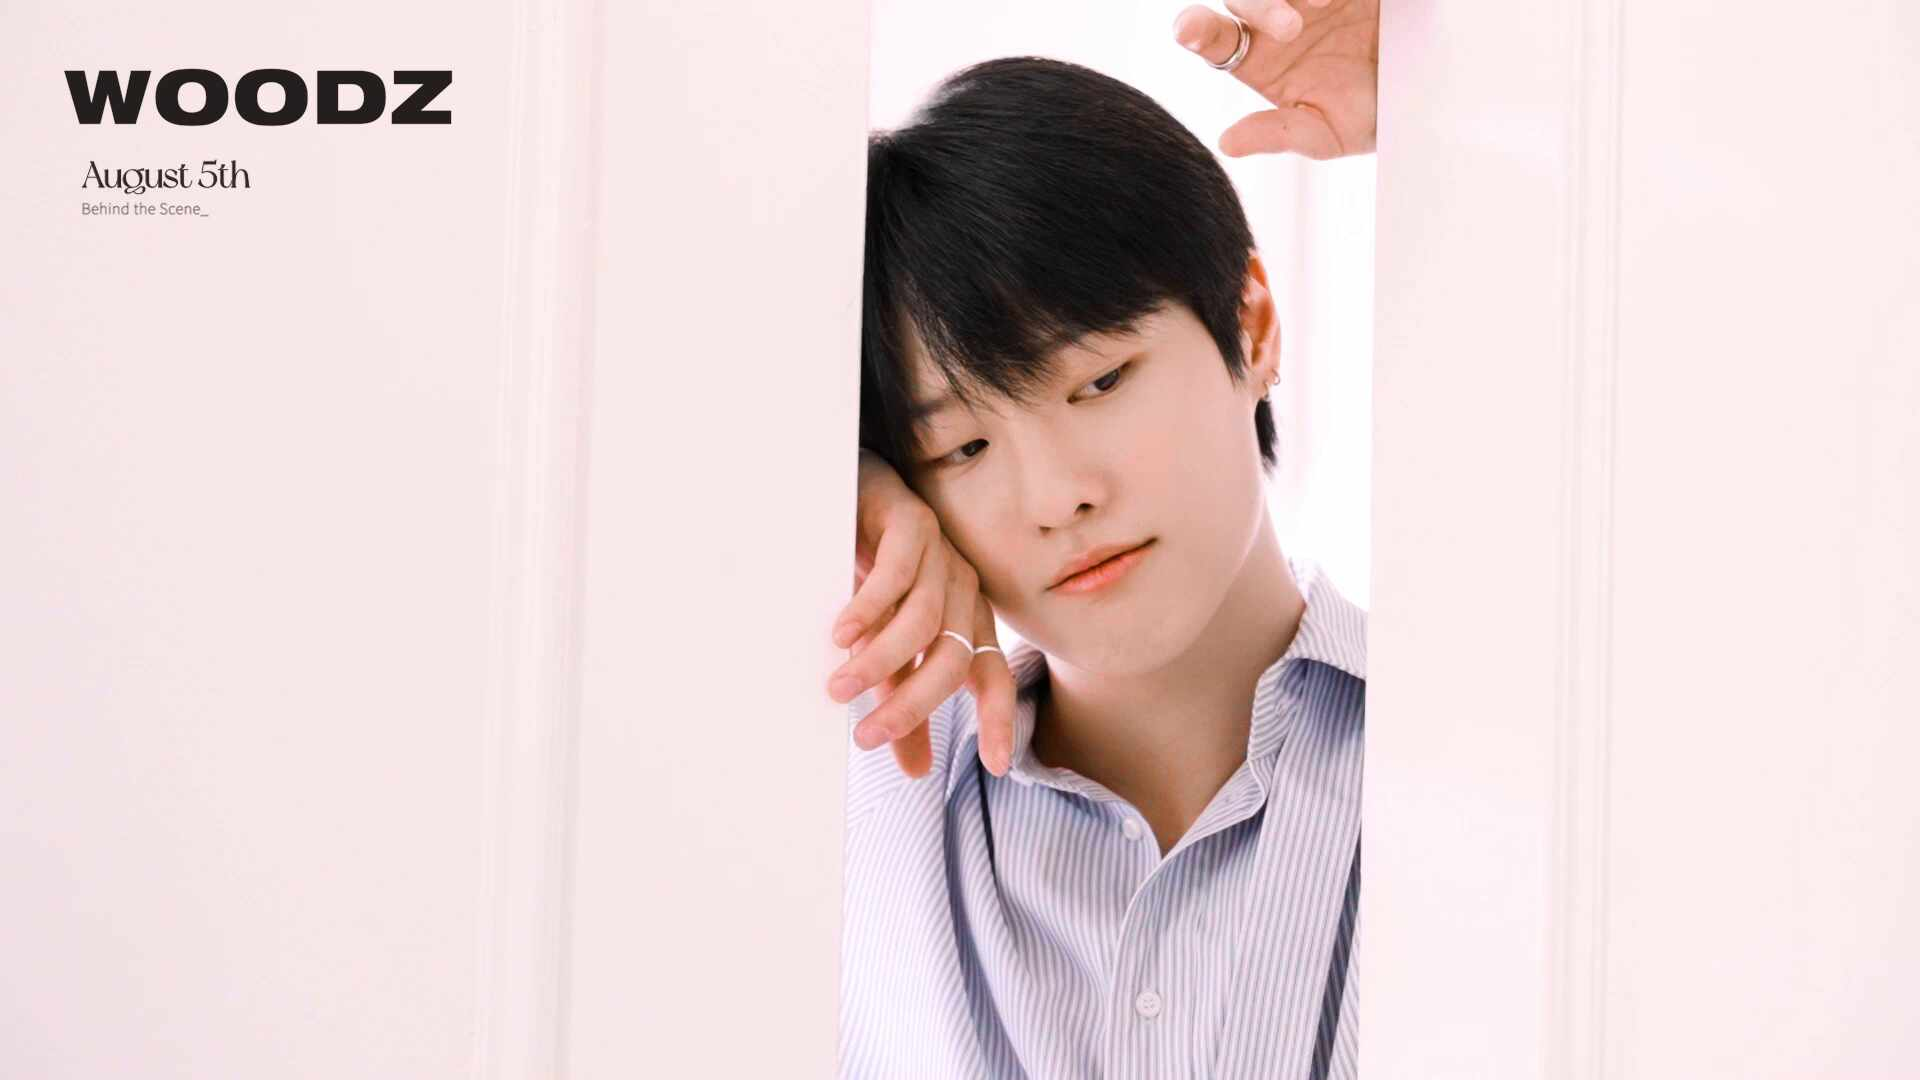 WOODZ(조승연) - August 5th Behind the scenes